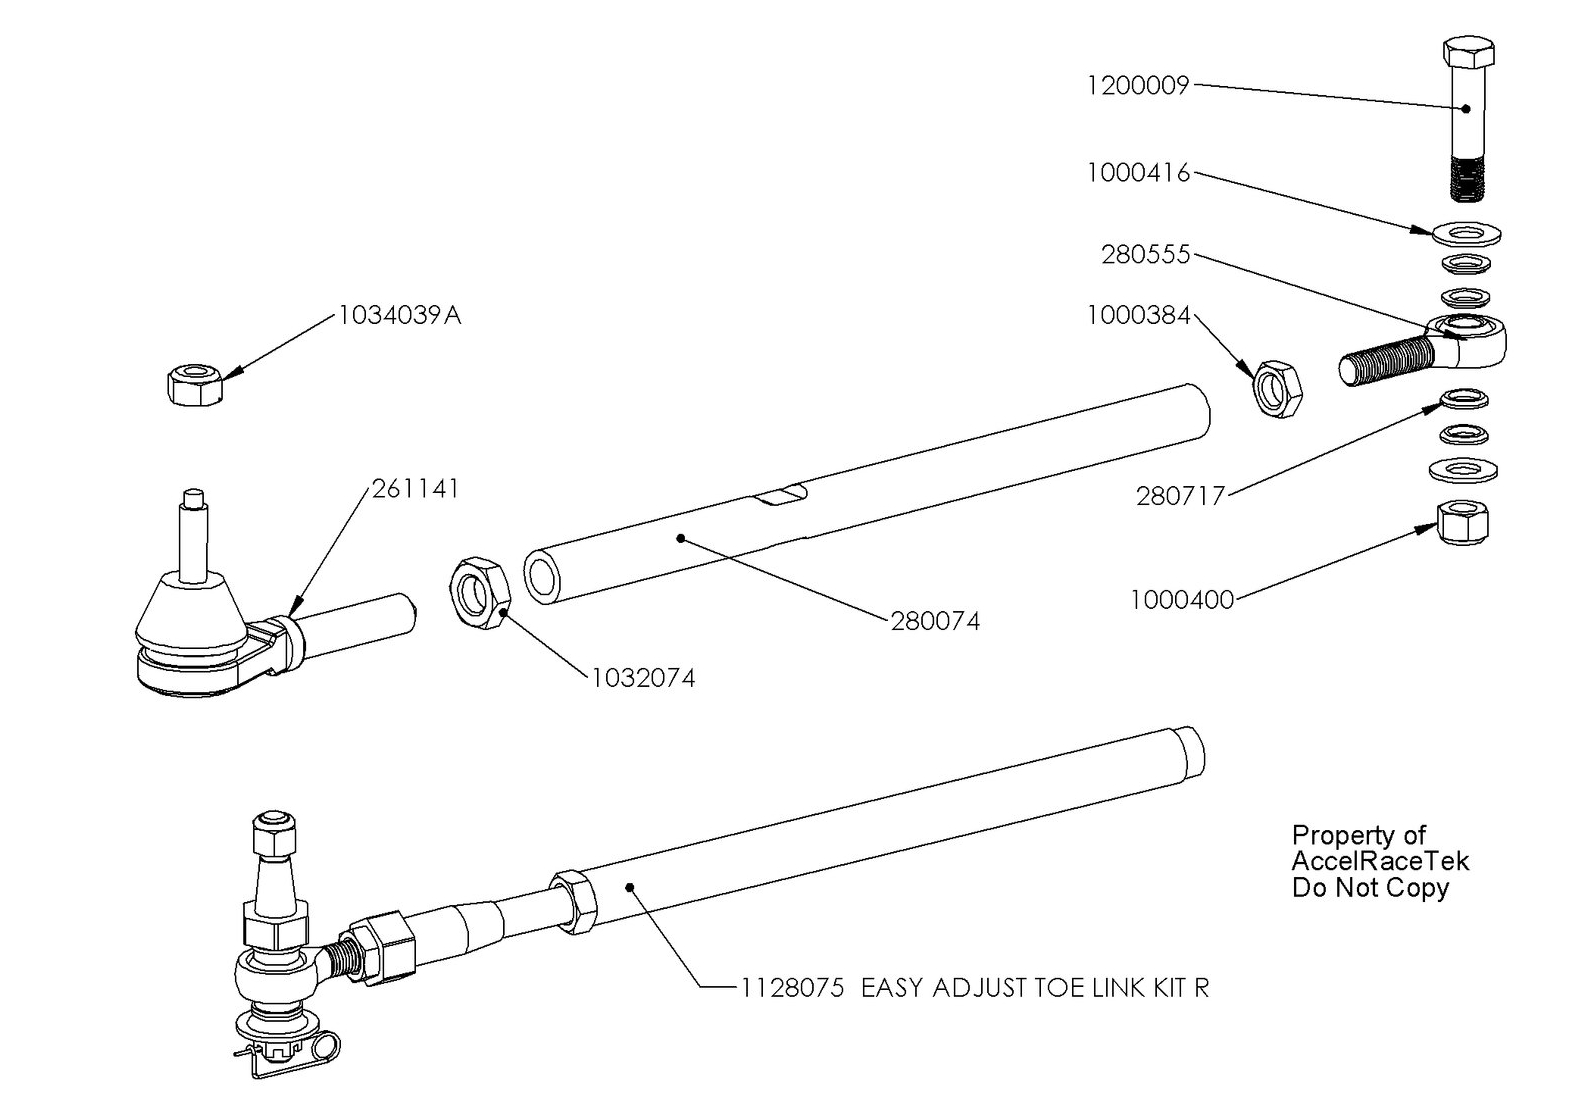 SpecRacer Tie Rod Assembly Drawing